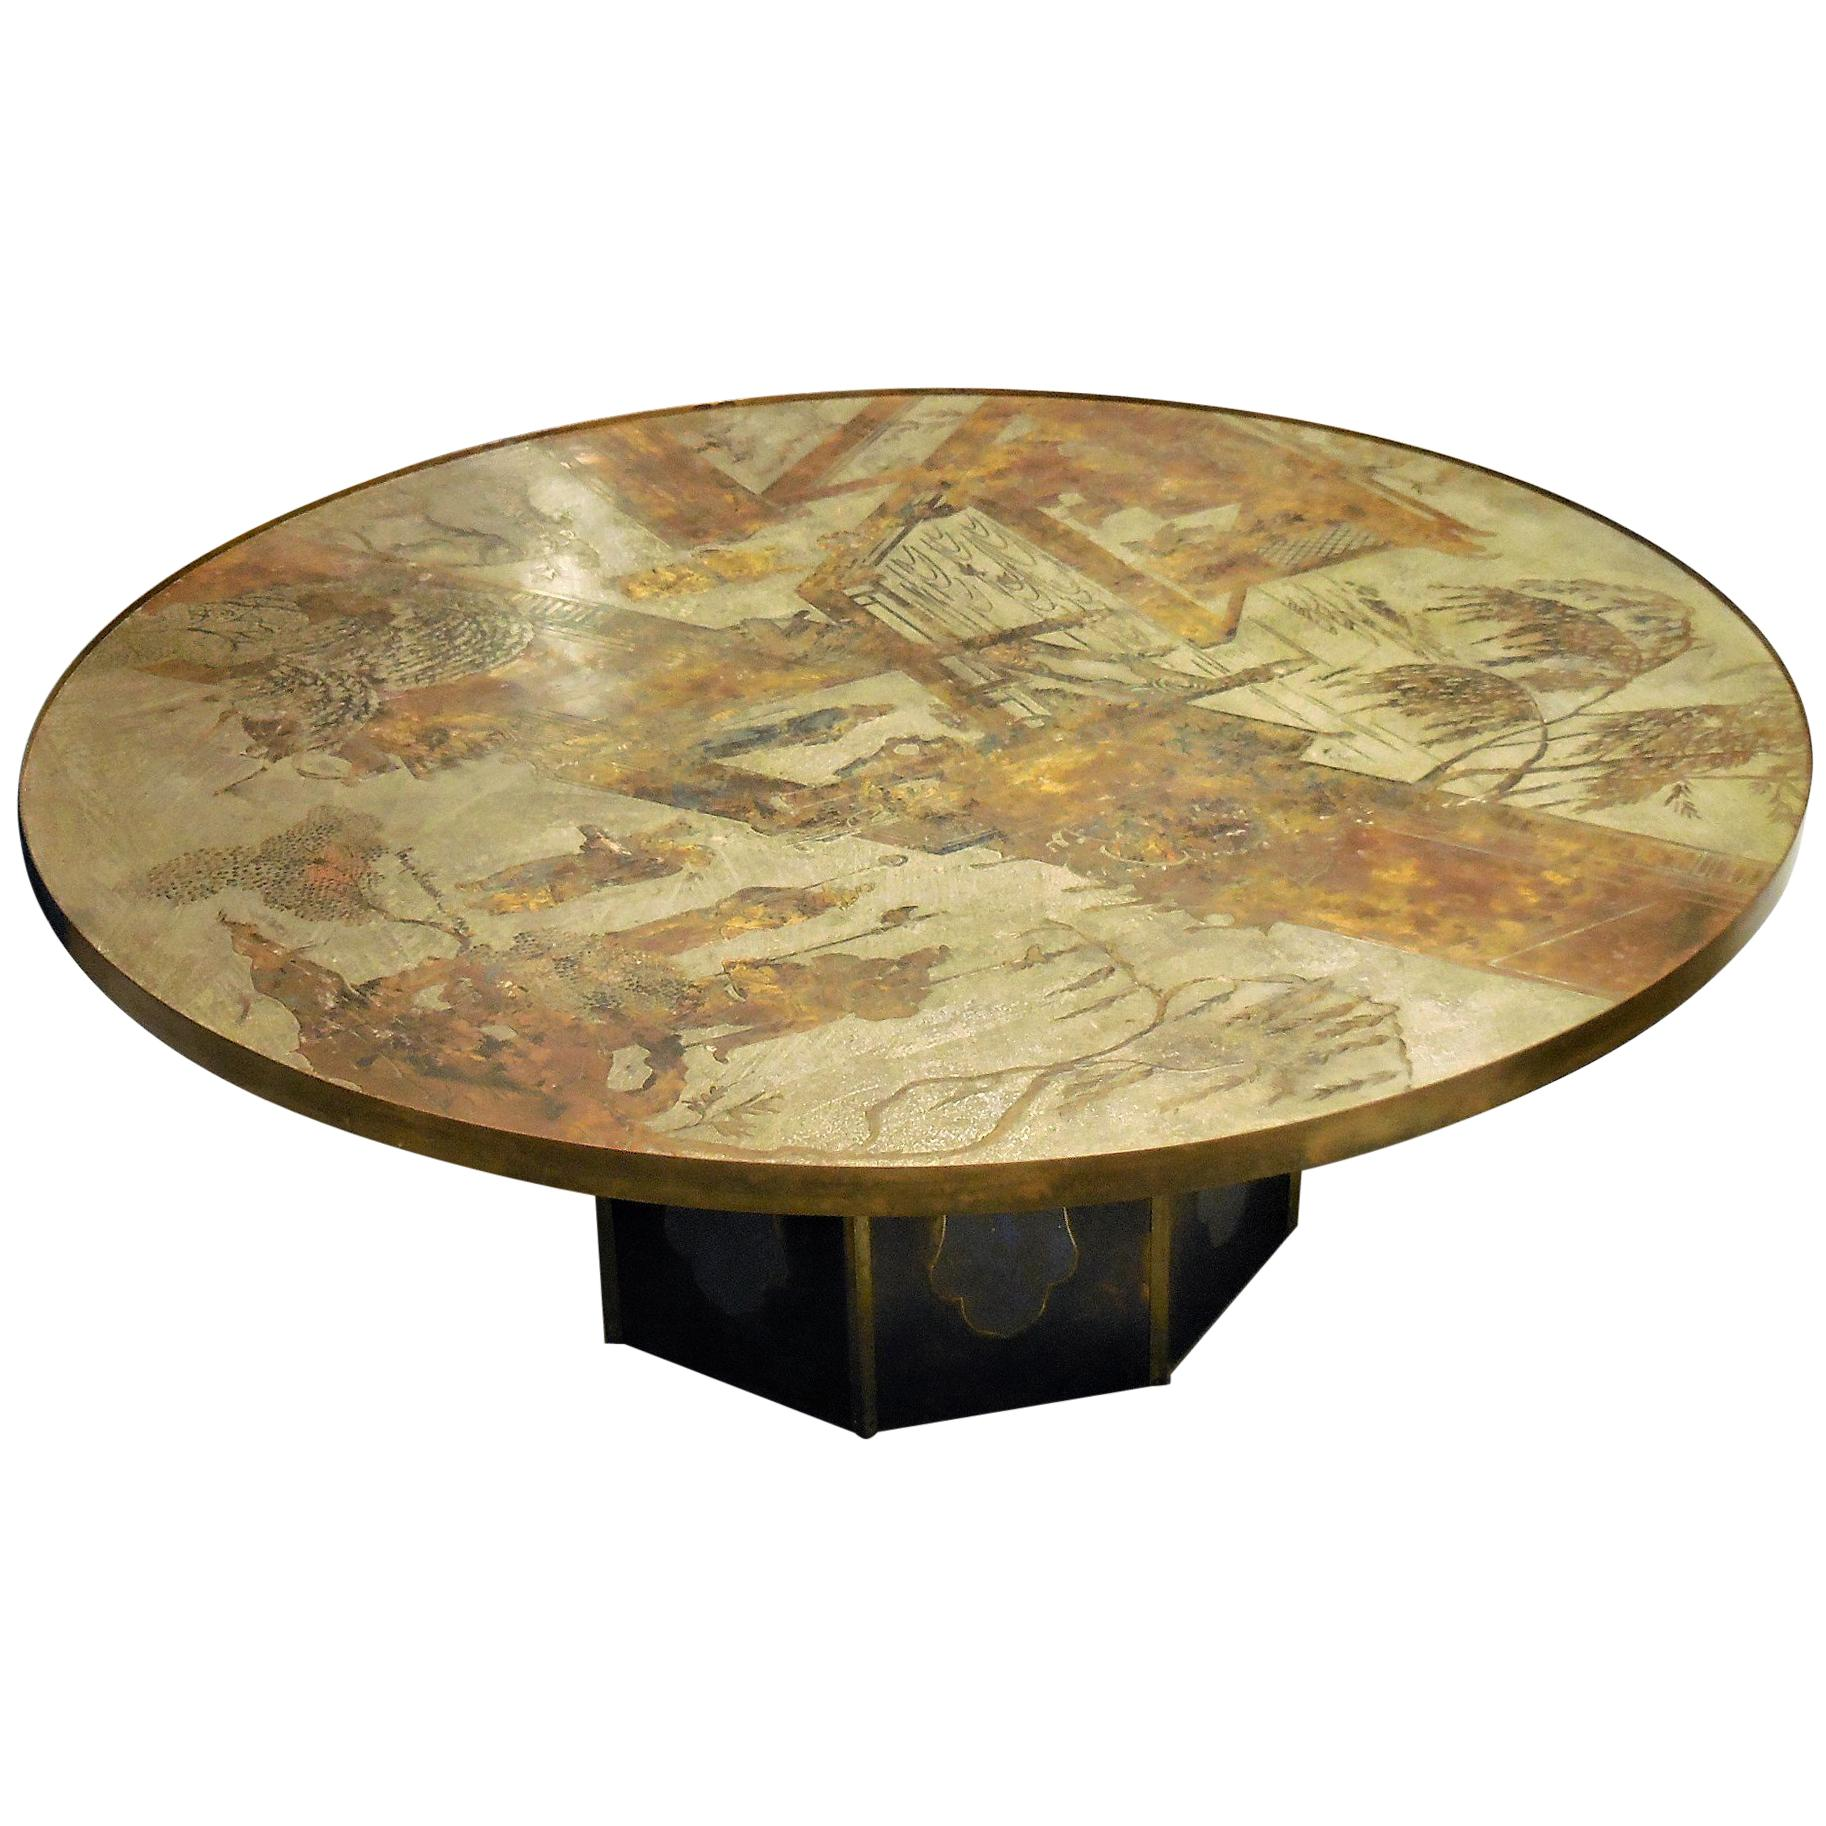 Charmant Philip And Kelvin LaVerne Round Bronze Coffee Table For Sale